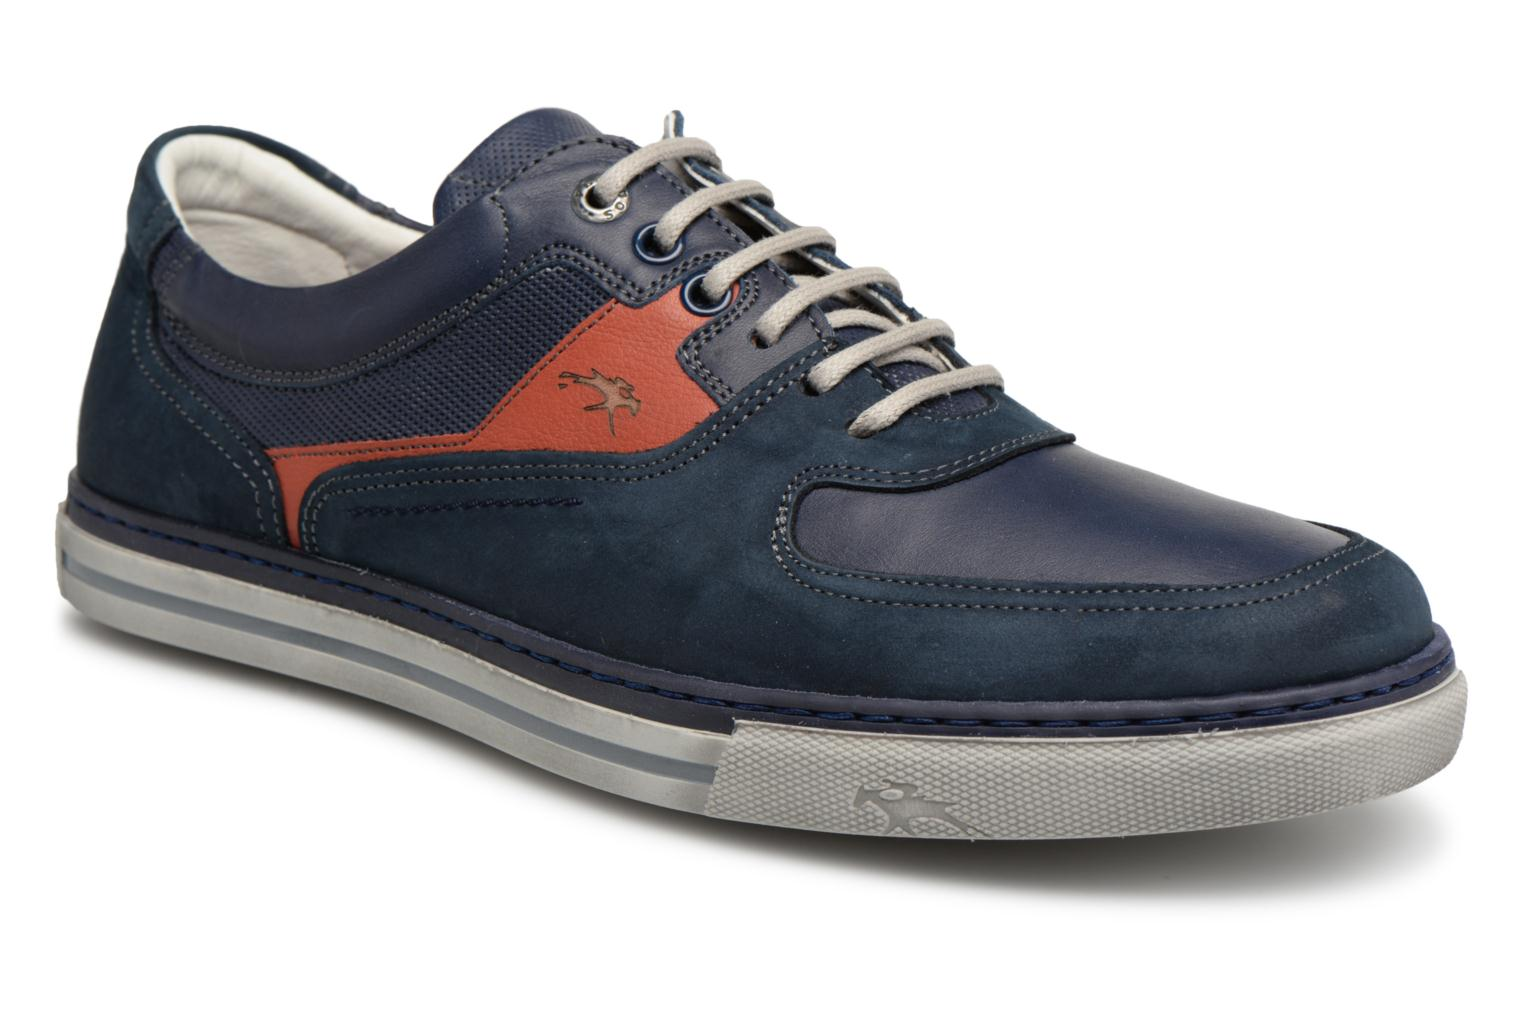 Sneakers Quebec 9695 by Fluchos